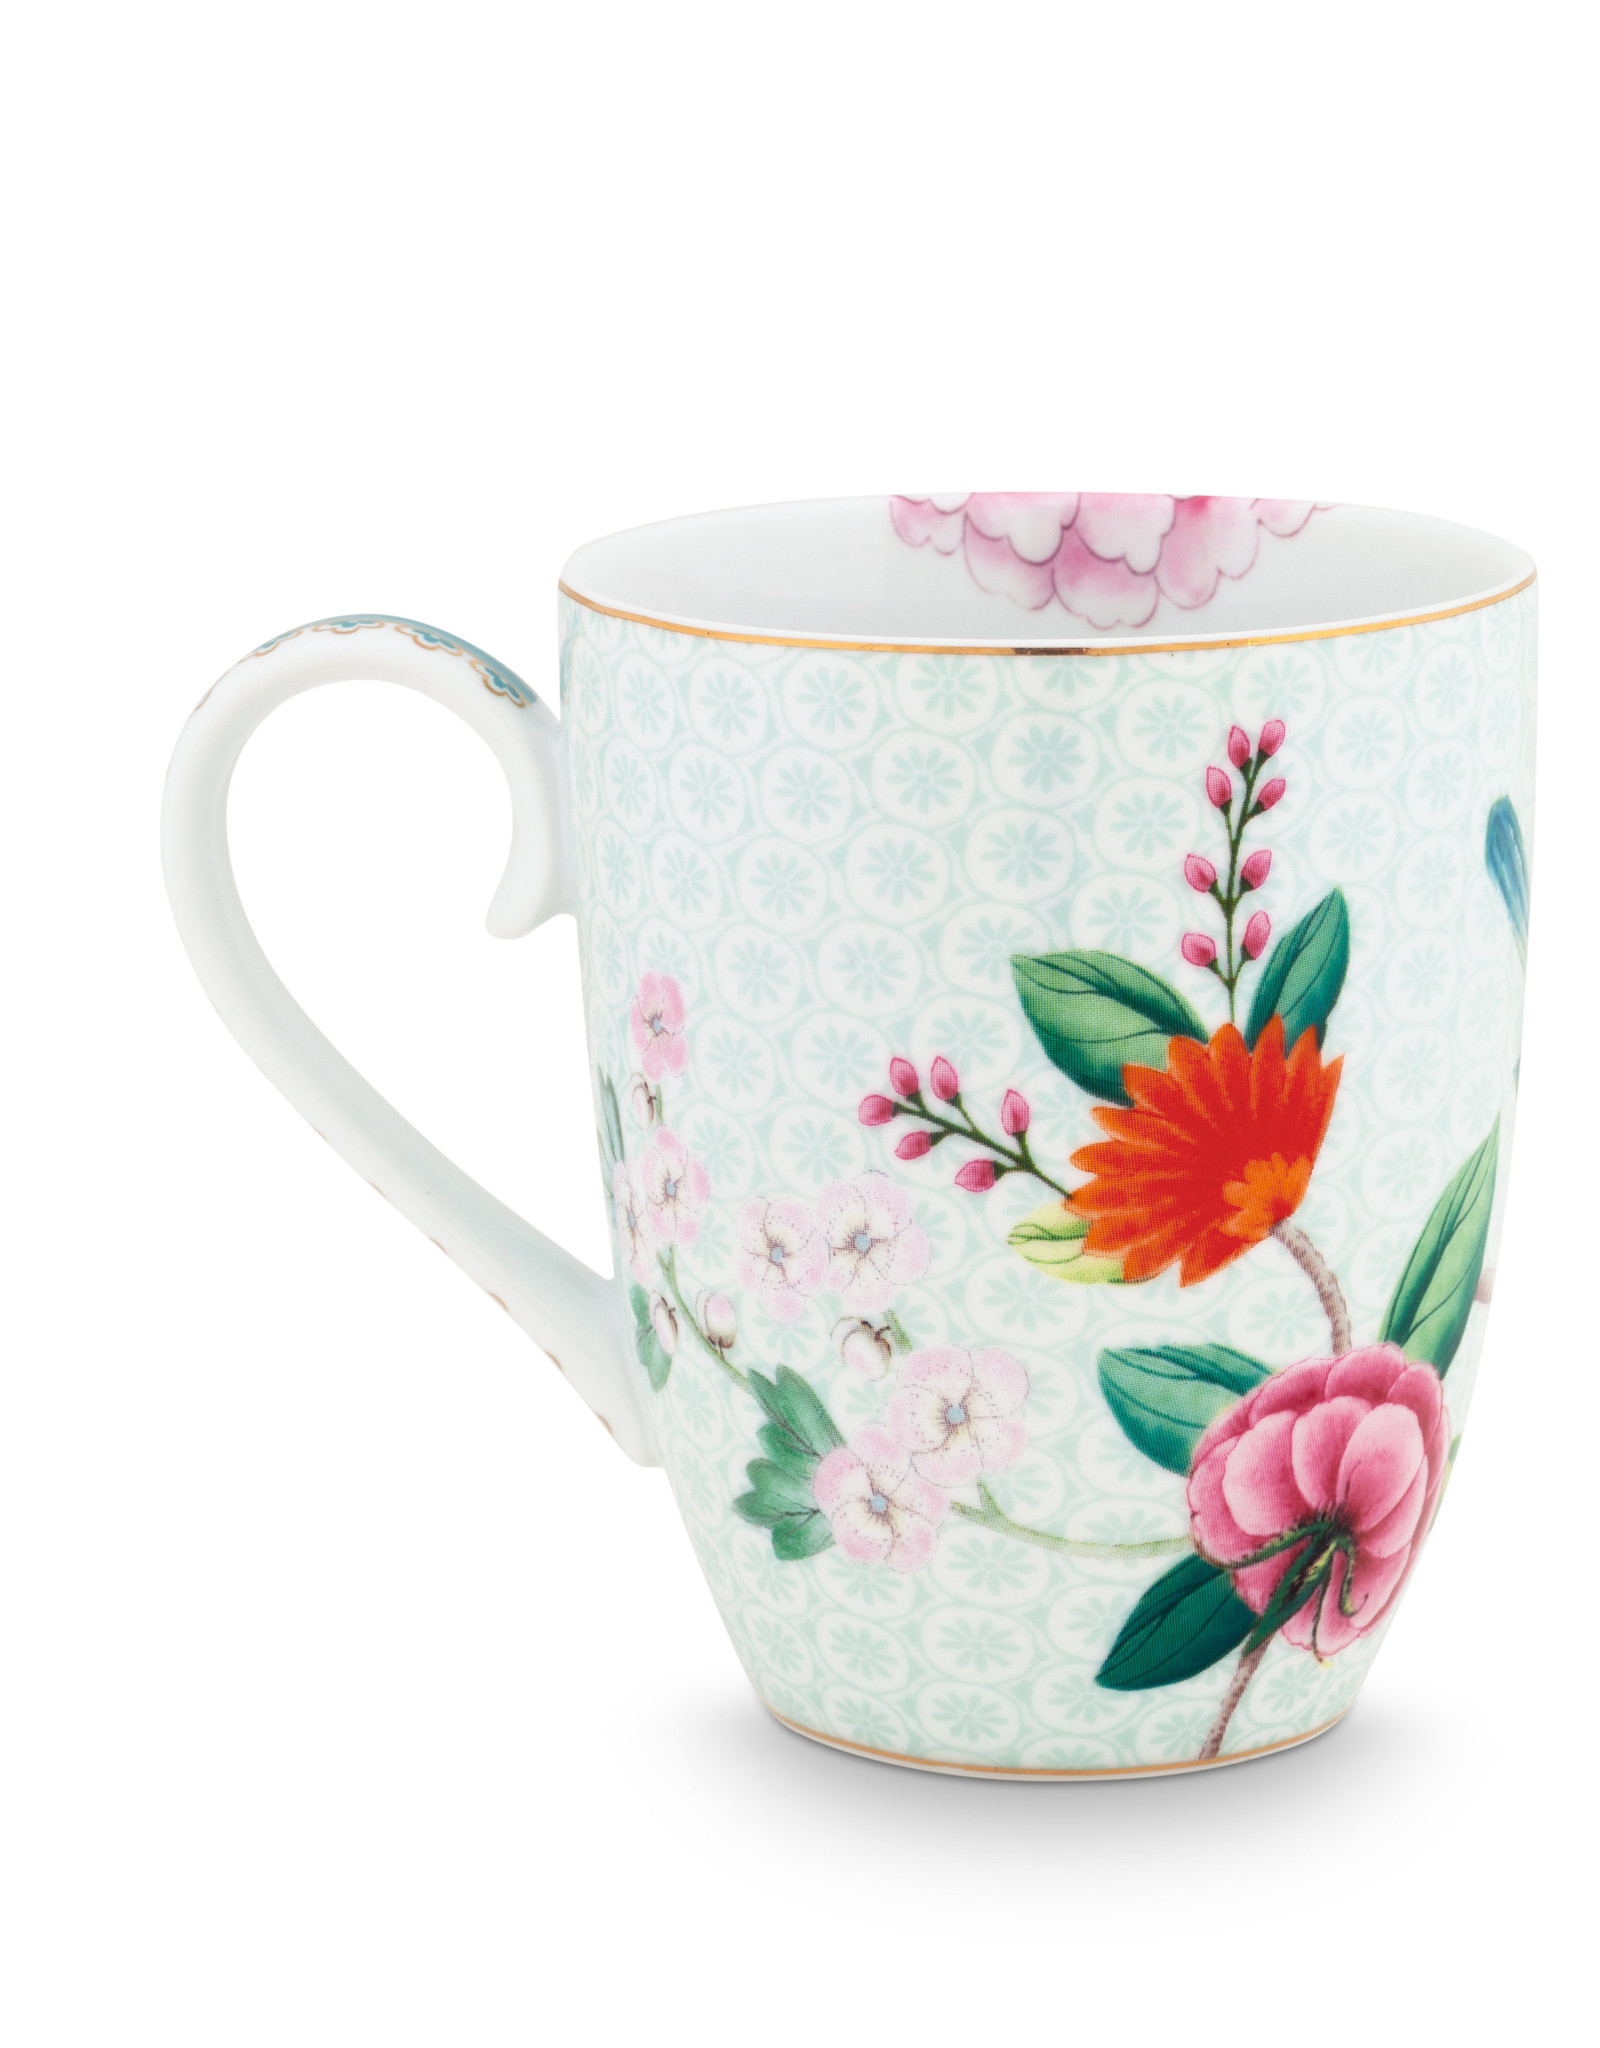 pip studio mug Large Blushing birds white 350ml